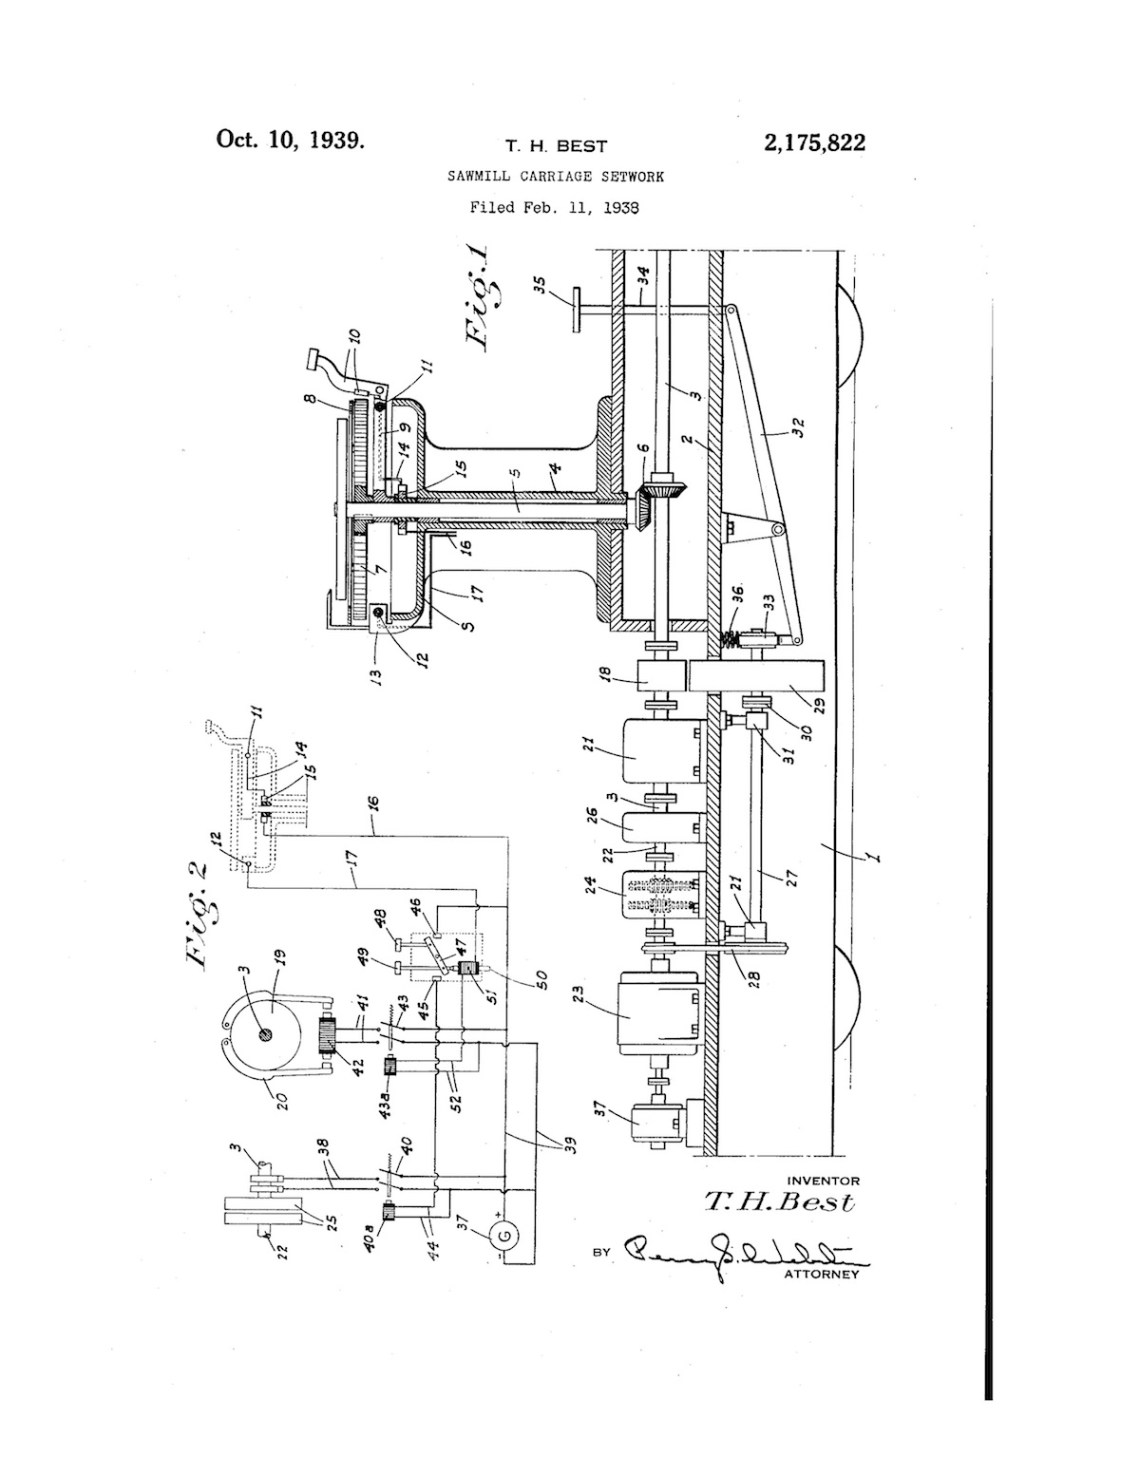 02-11-1938 patent 2175822 1938-01-11 Theodore H. Best, This invention relates to sawmills, and particularly to the setwork of log carriages Pg 1 of 4